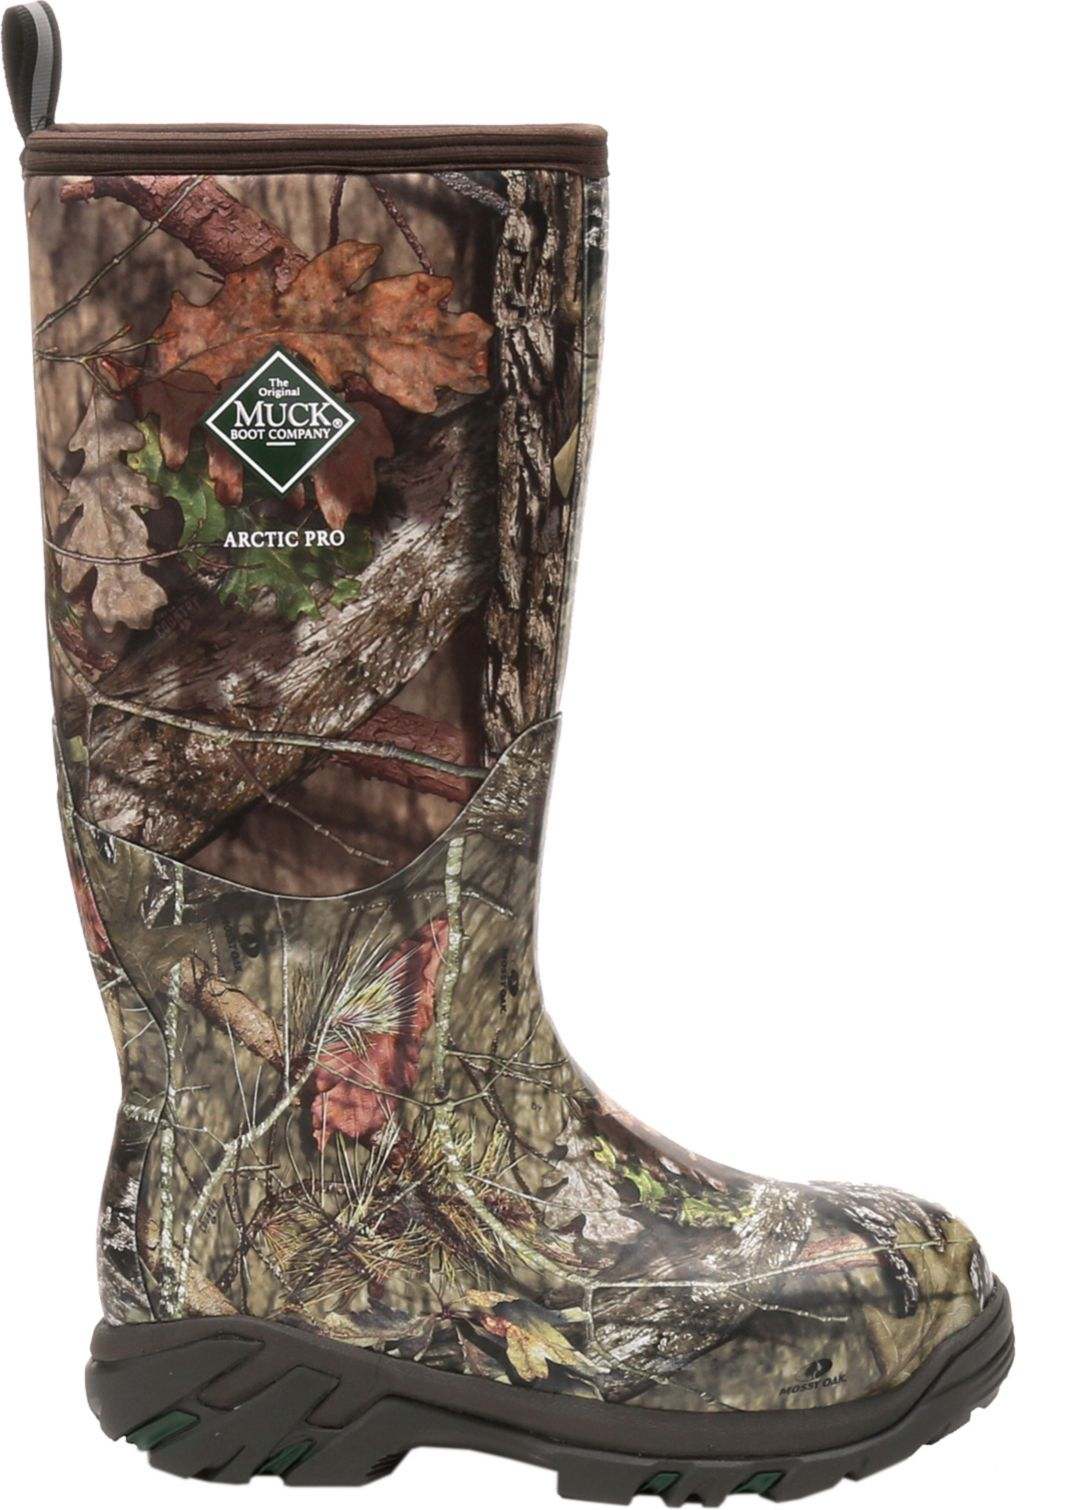 4d5cc9ad55237 Muck Boots Men's Arctic Pro Mossy Oak Break-Up Insulated Rubber Hunting  Boots 1